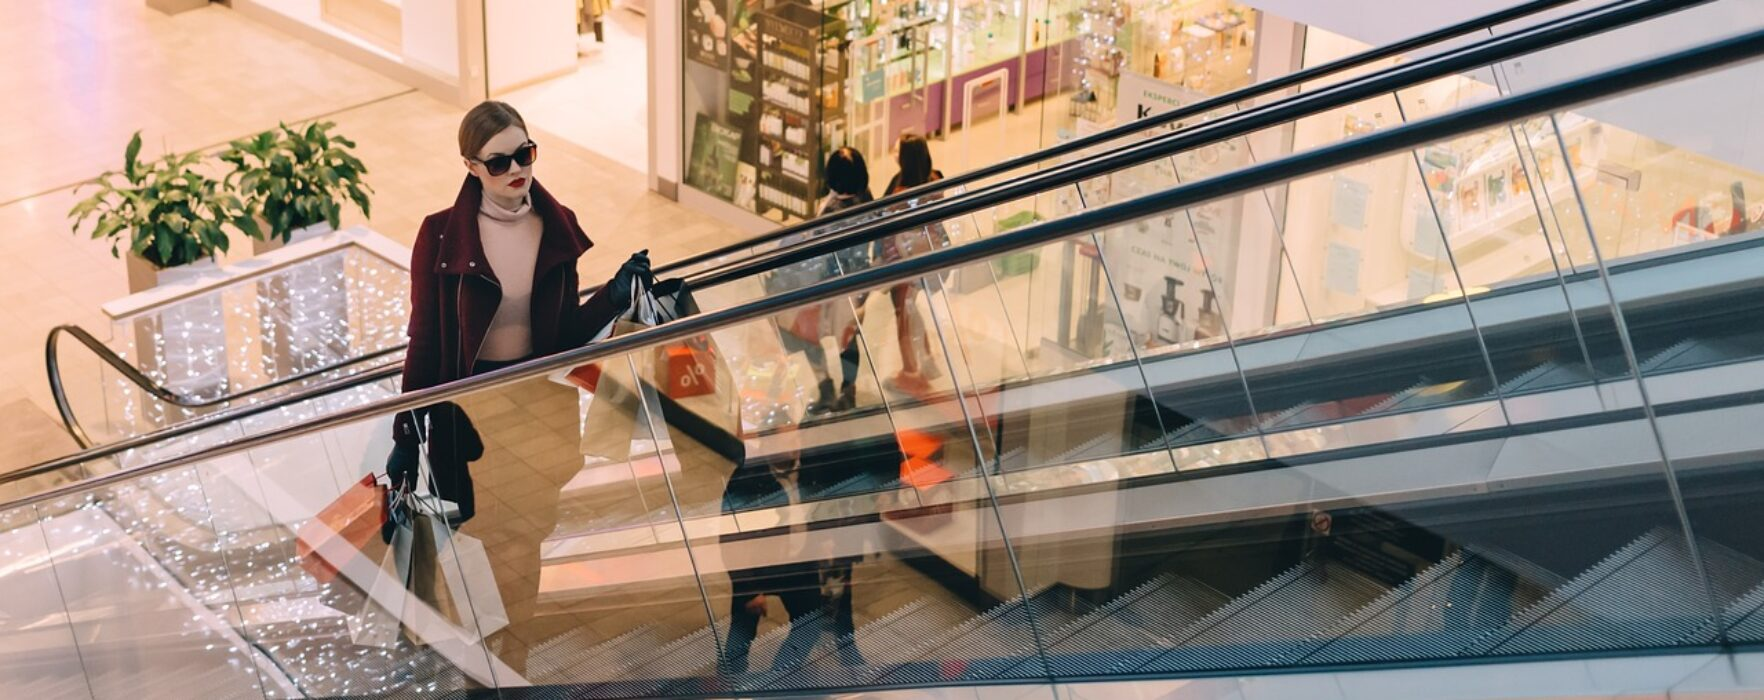 Shoppers have spent £6,000 on discounted items in the last 12 months